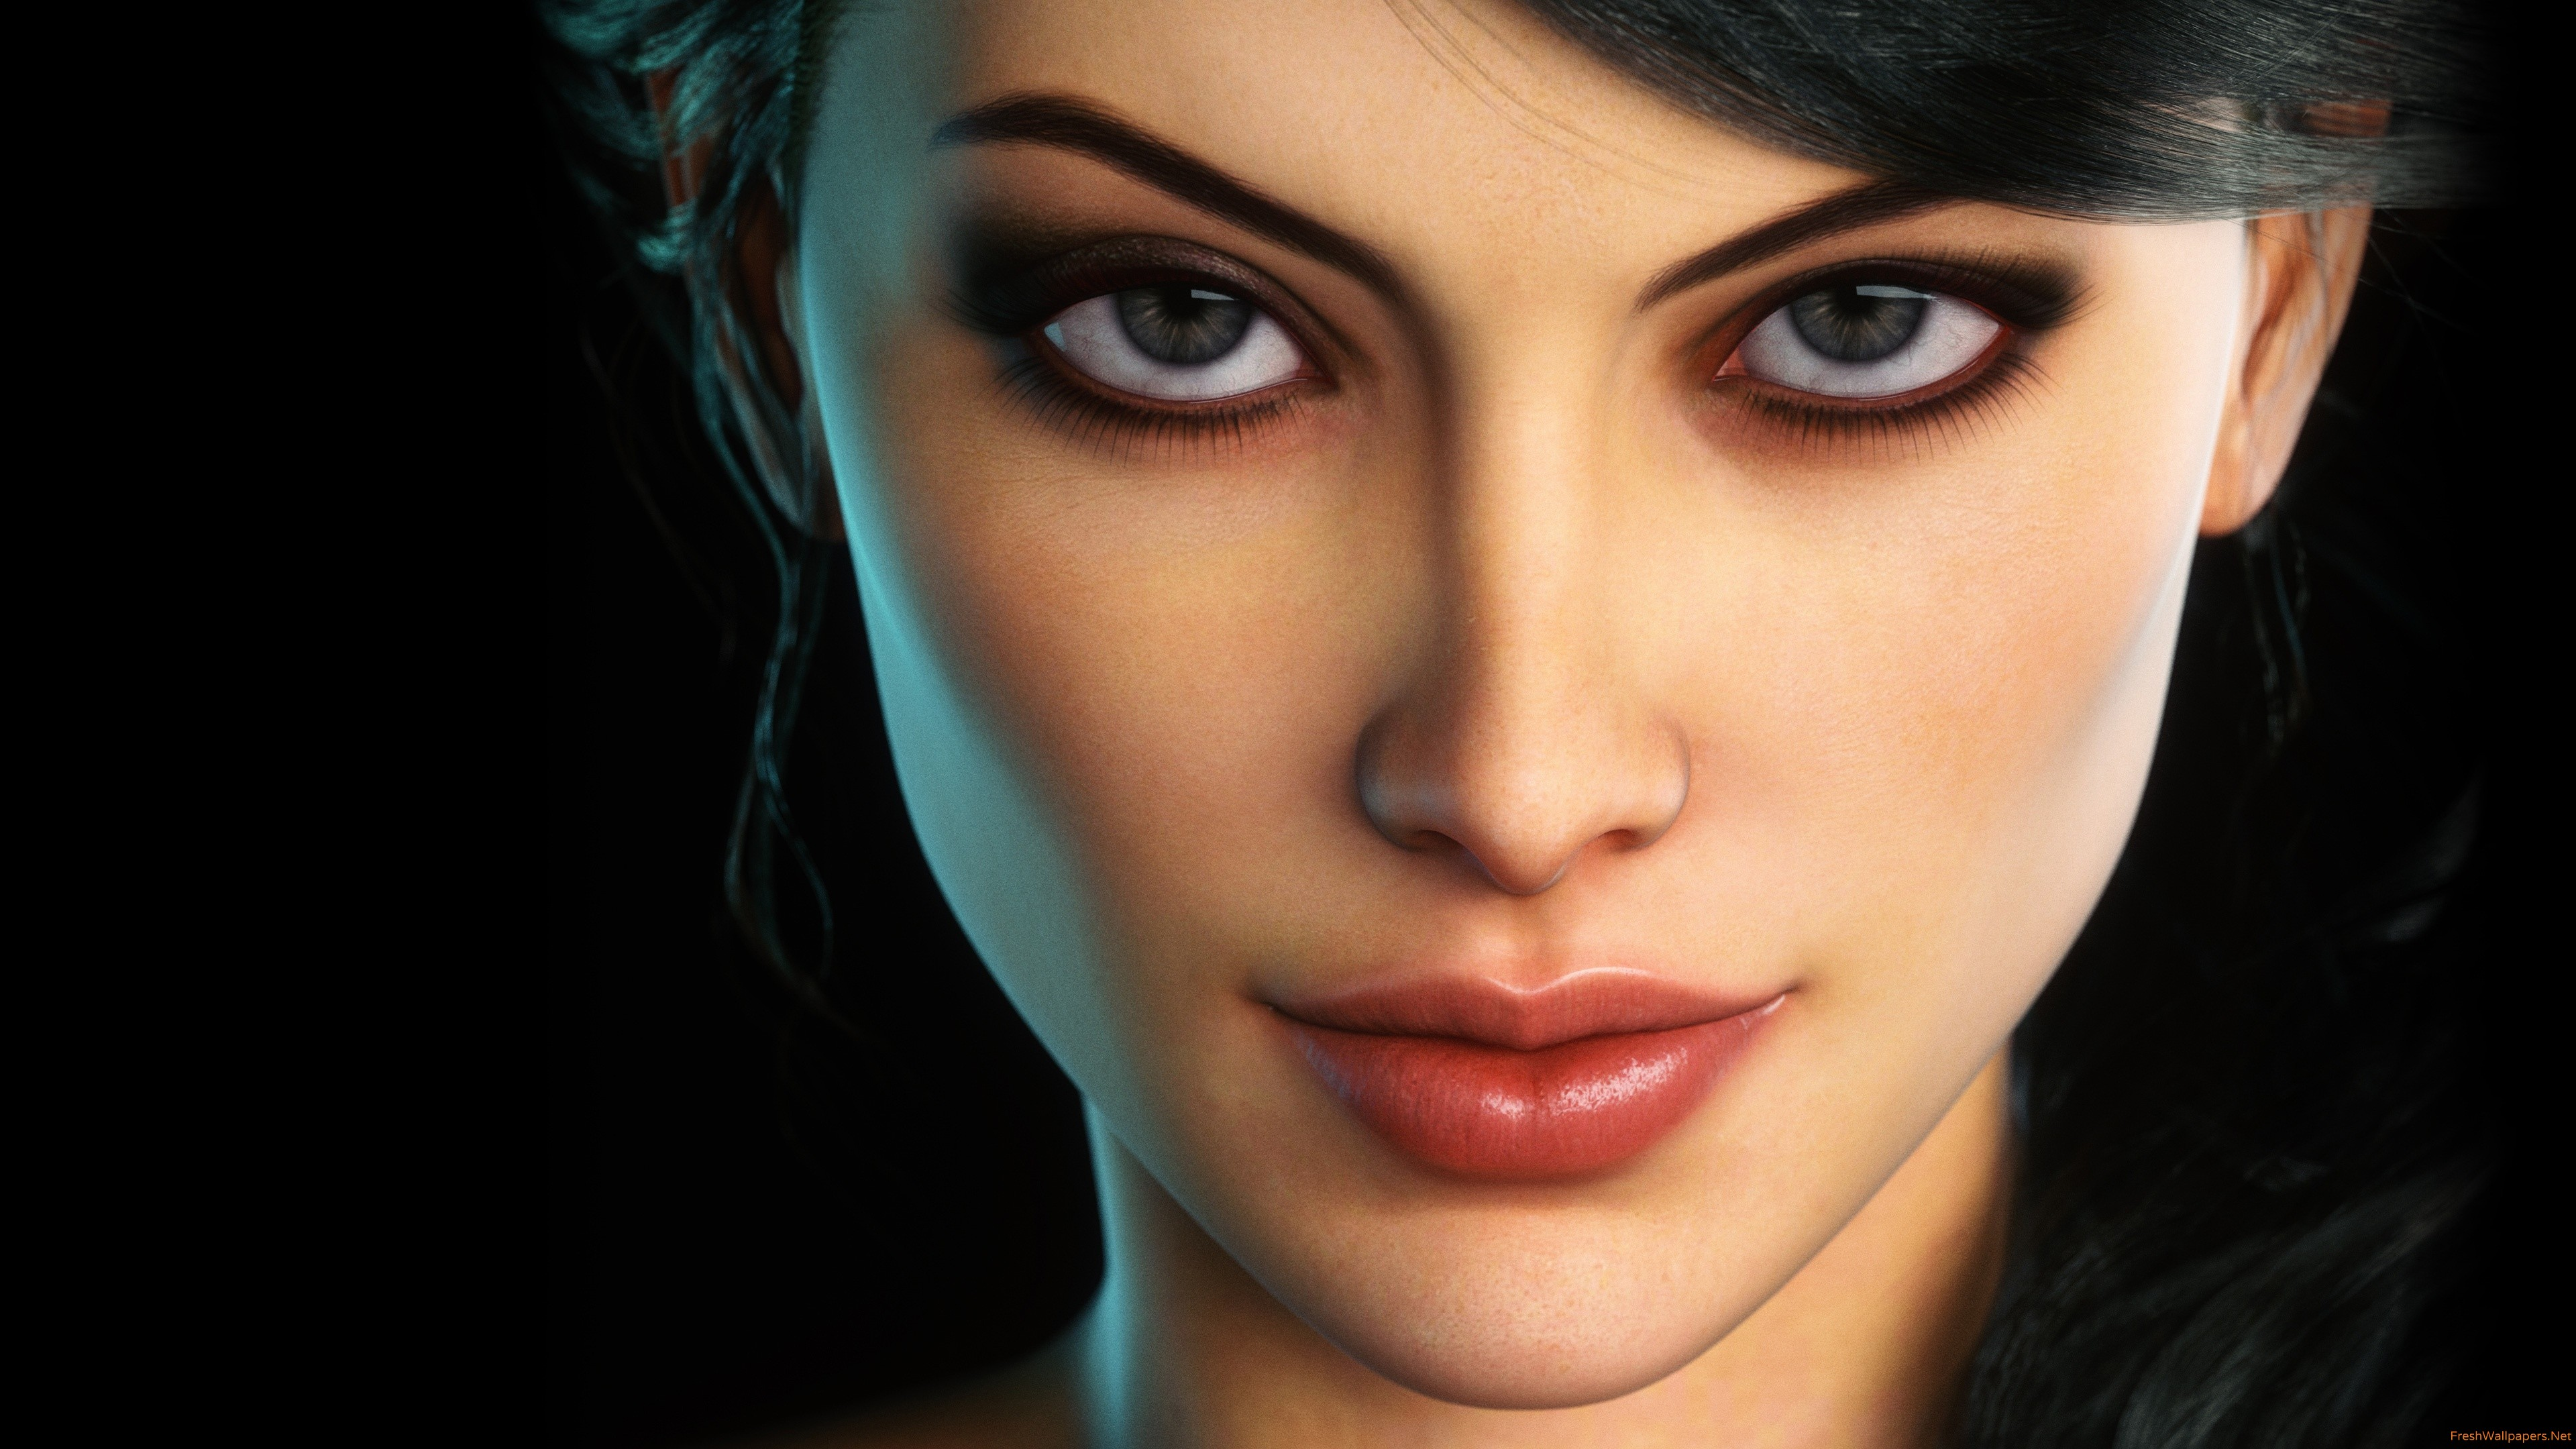 Fantasy Woman Face wallpapers | Freshwallpapers